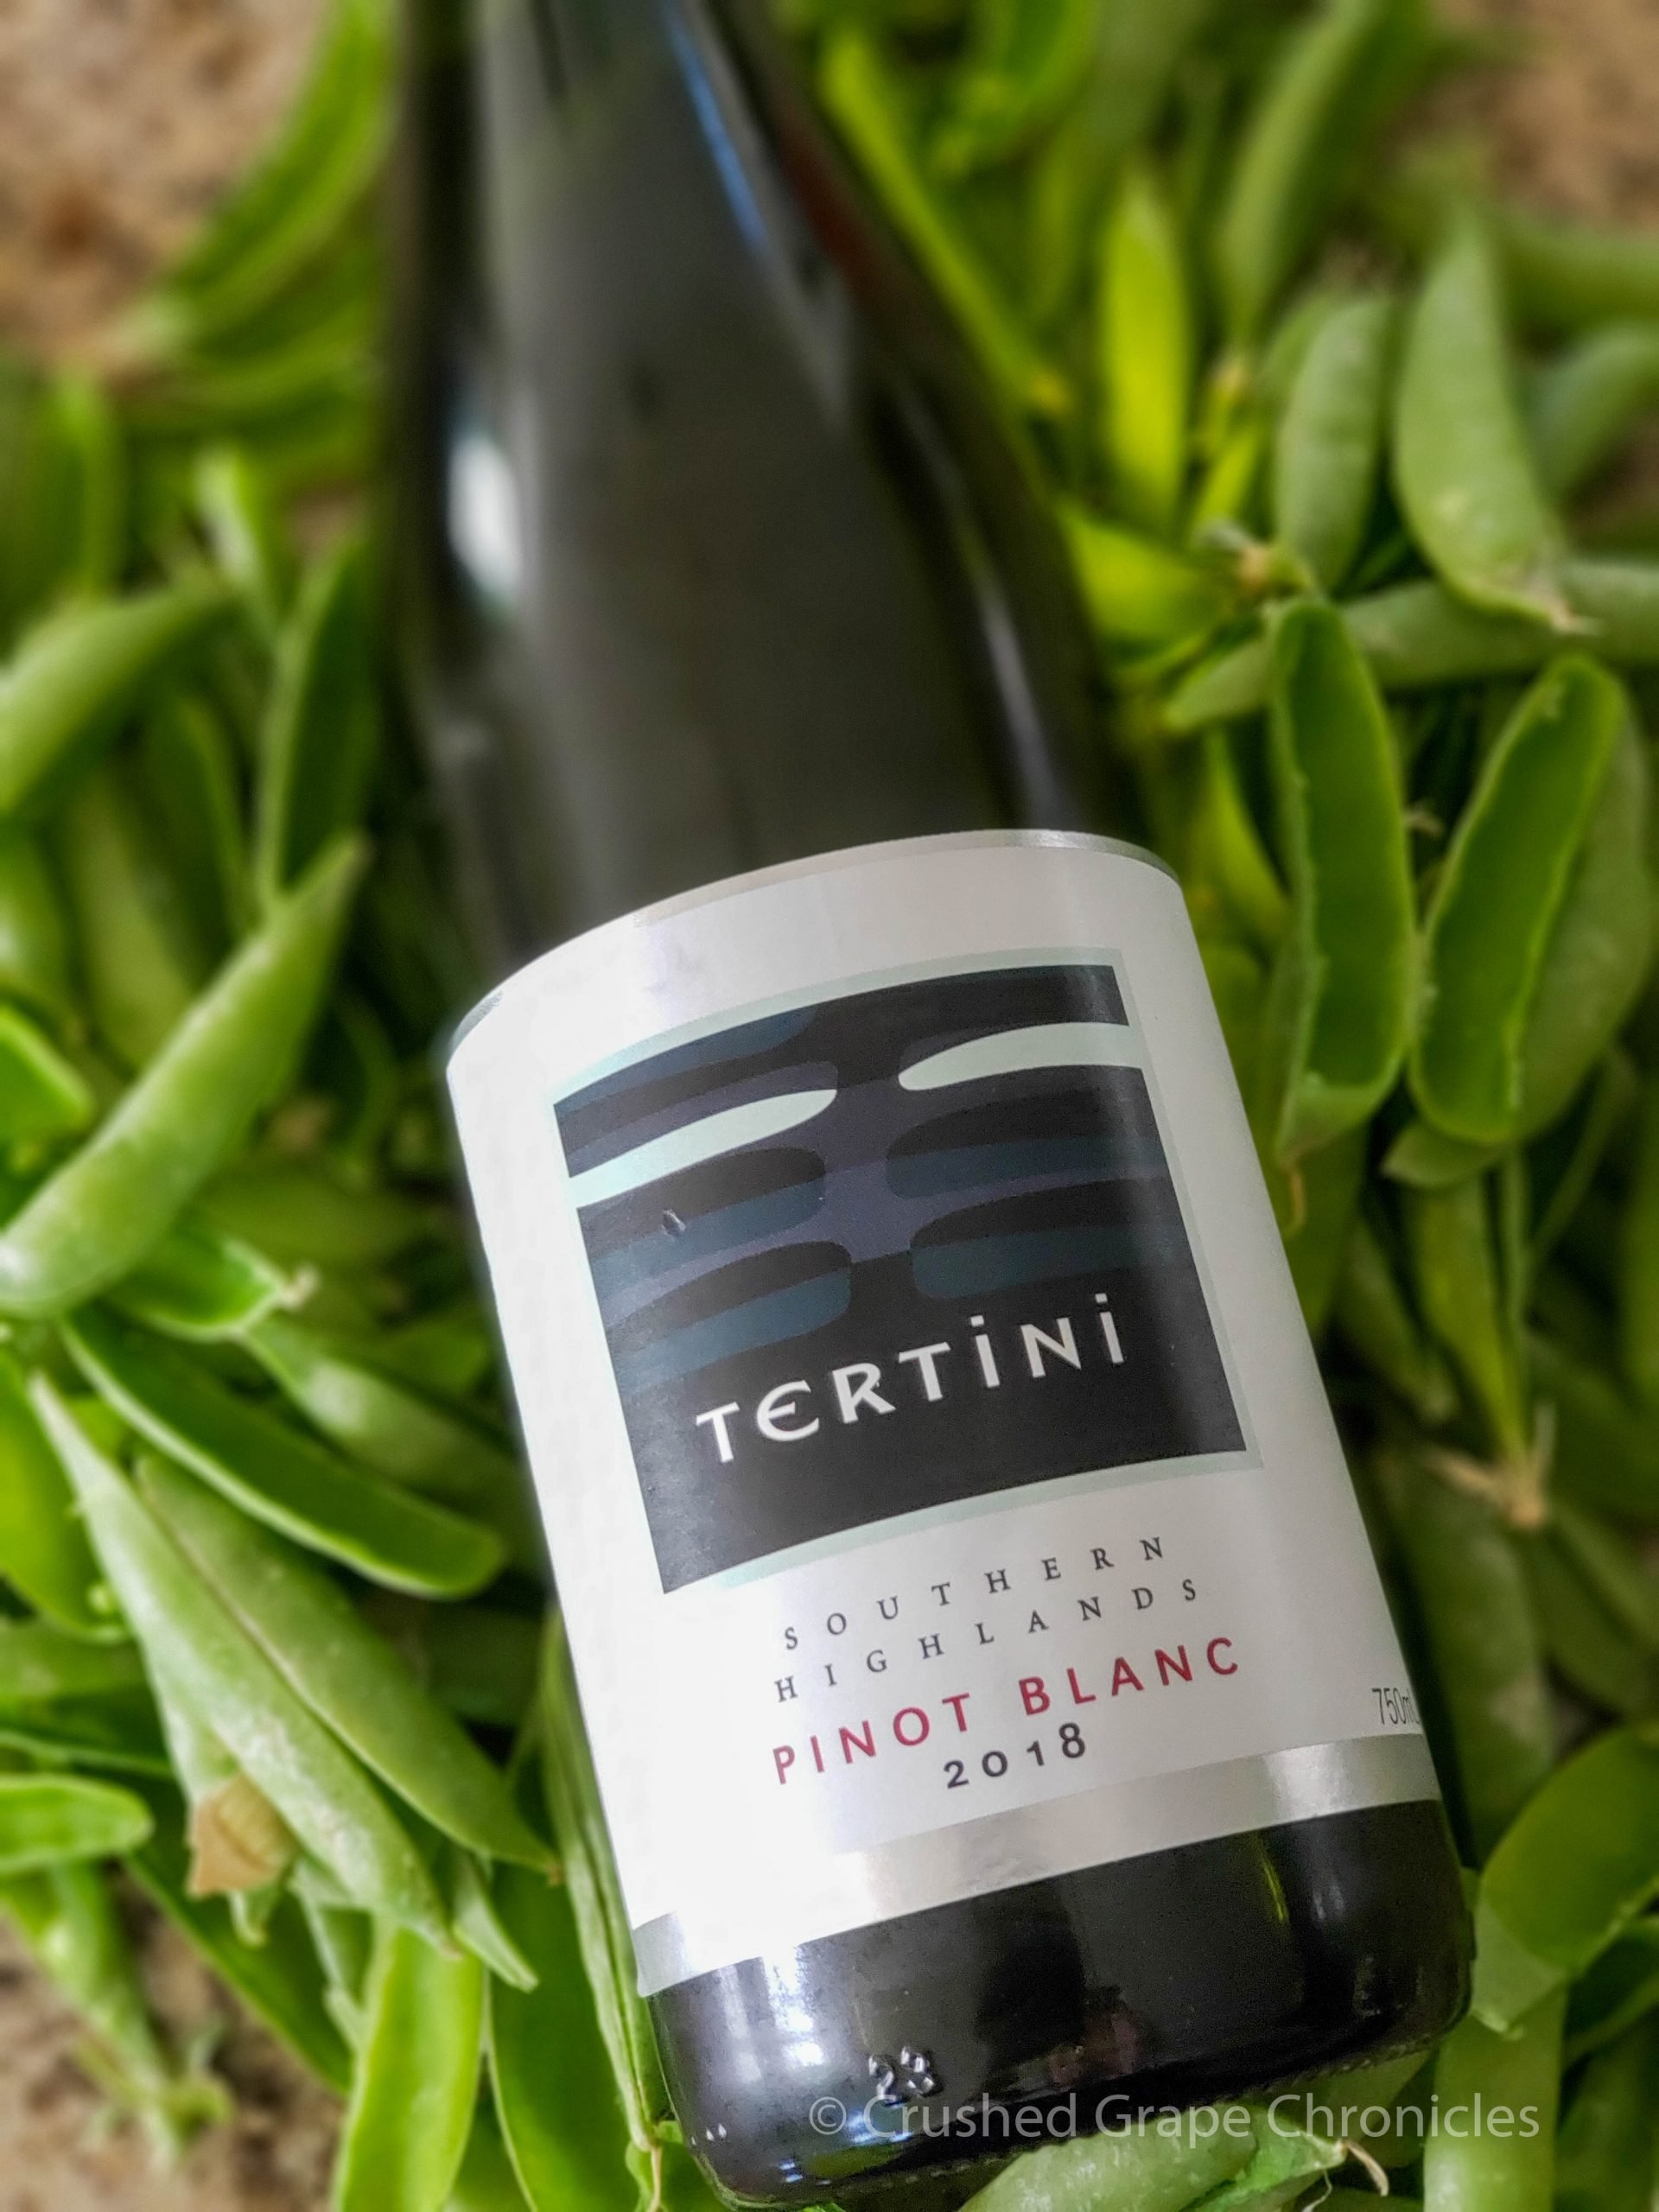 Tertini Pinot Blanc amidst the pea shells